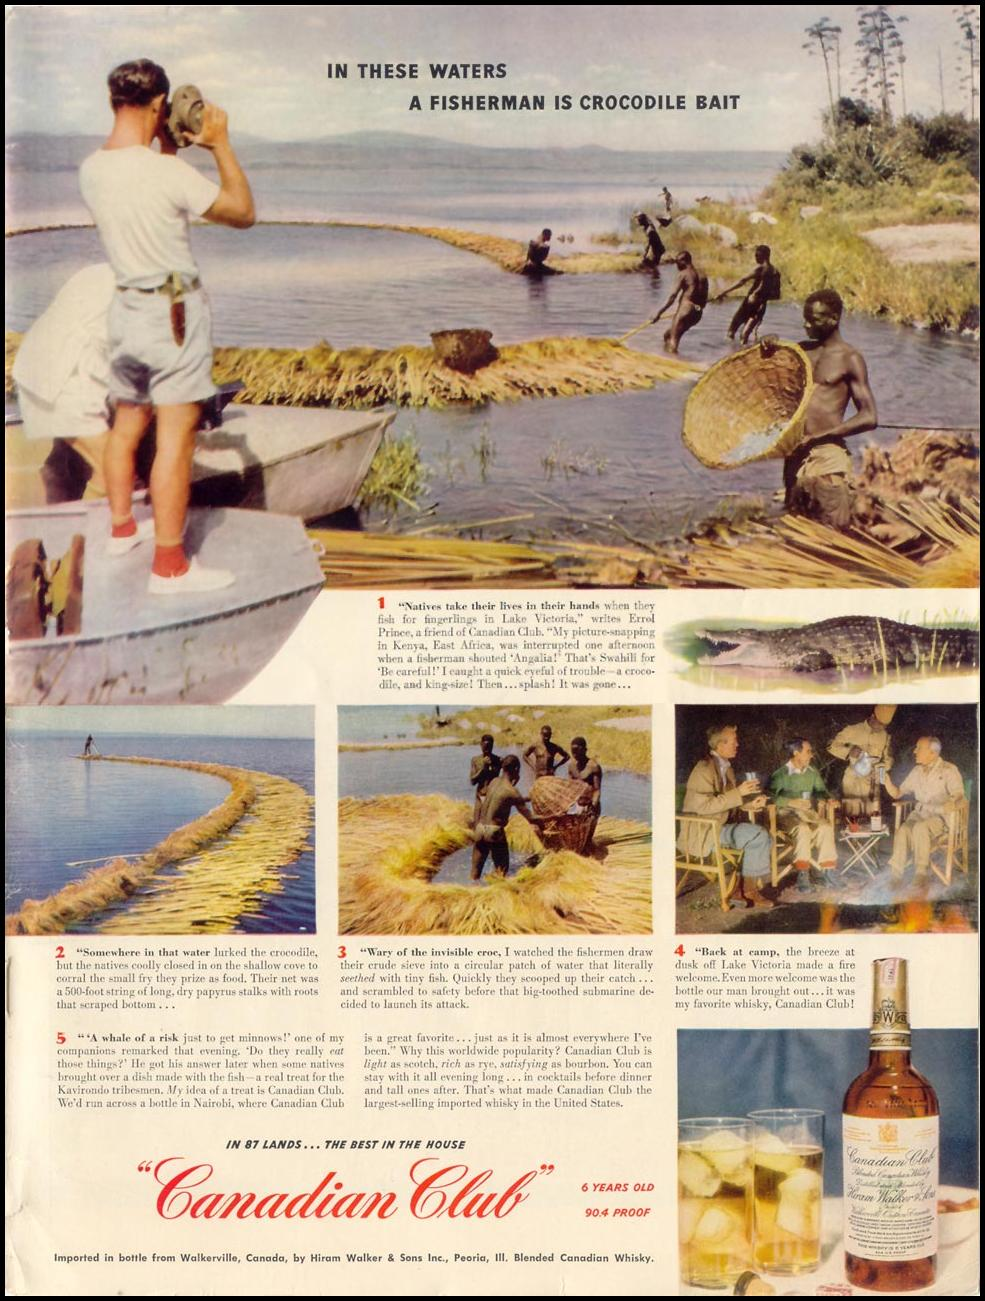 CANADIAN CLUB WHISKEY LIFE 06/05/1950 INSIDE BACK